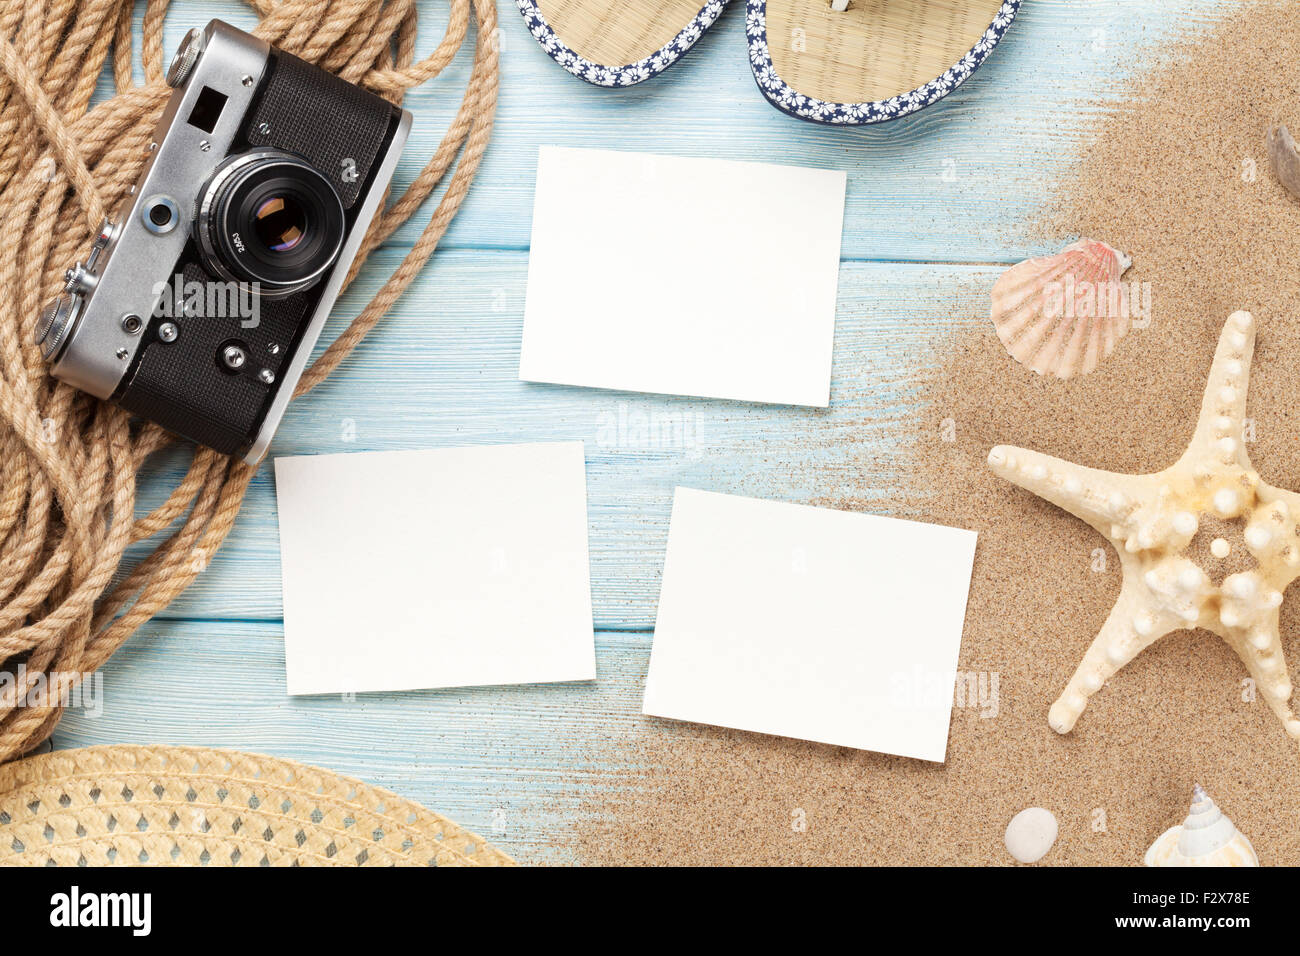 Stock Photo - Travel and vacation photo frames and items on wooden table.  Top view